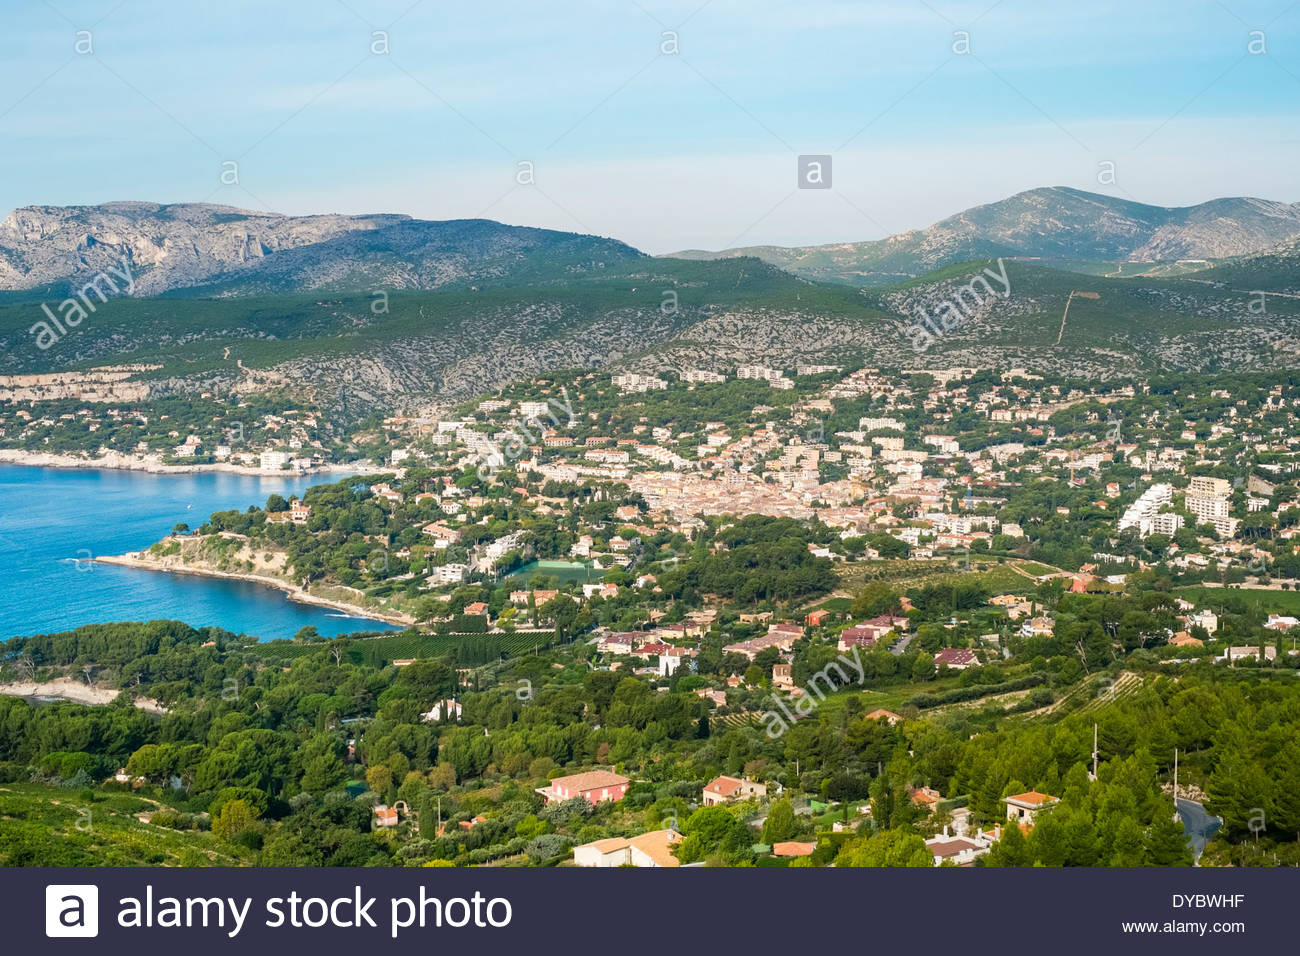 High-angle view of town of Cassis, Bouches-du-Rhône, Provence-Alpes-Côte d'Azur, France - Stock Image